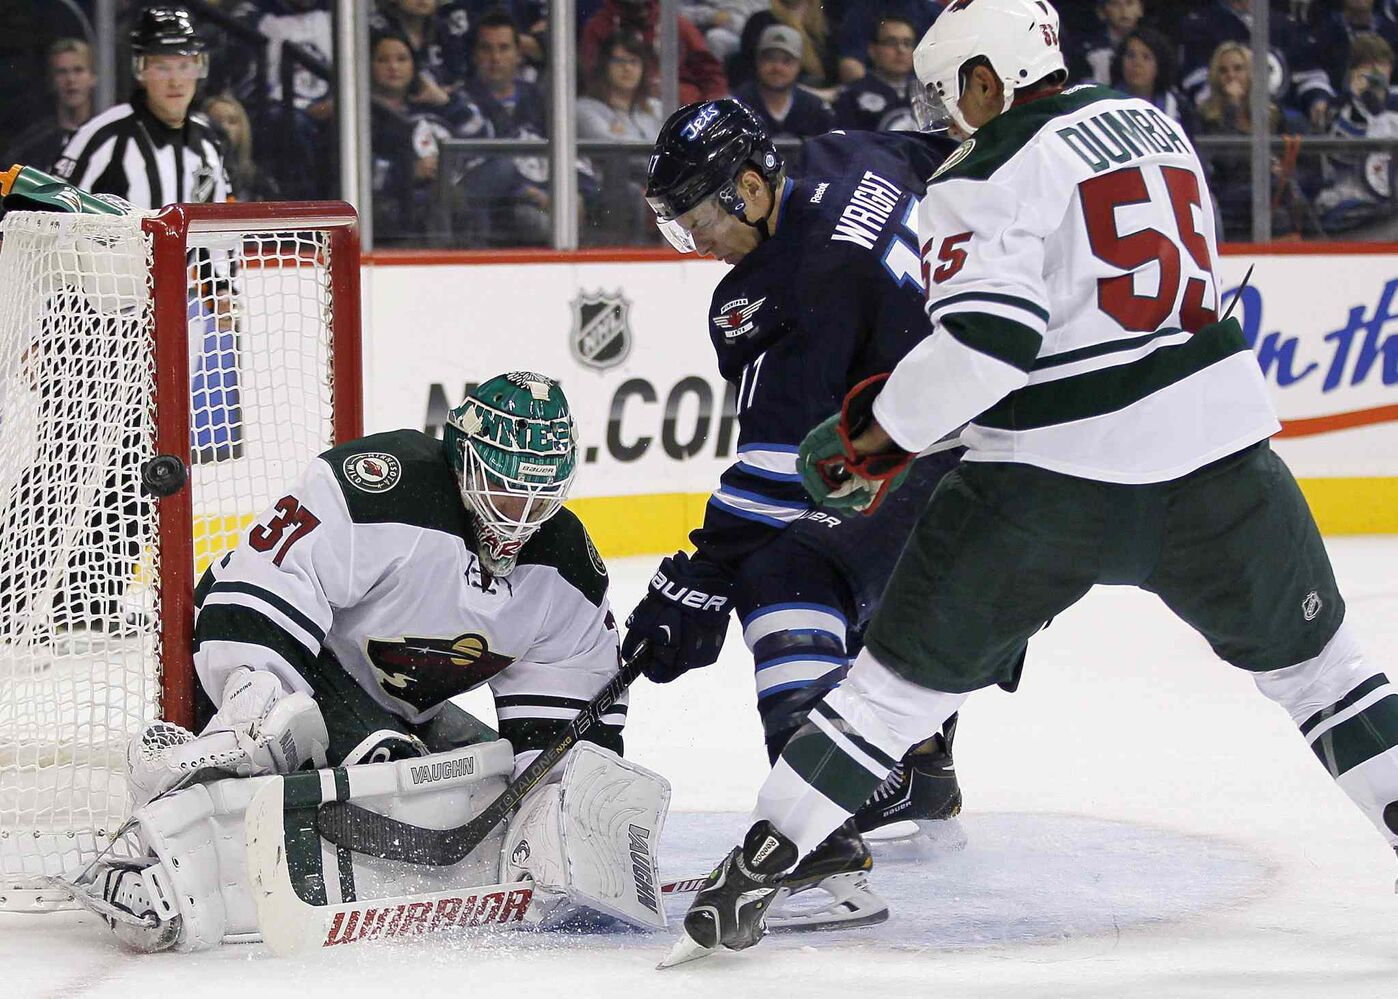 Minnesota Wild goaltender Josh Harding stops James Wright of the Winnipeg Jets during the second period as Mathew Dumba of the Wild tries to move him. (John Woods / The Canadian Press)